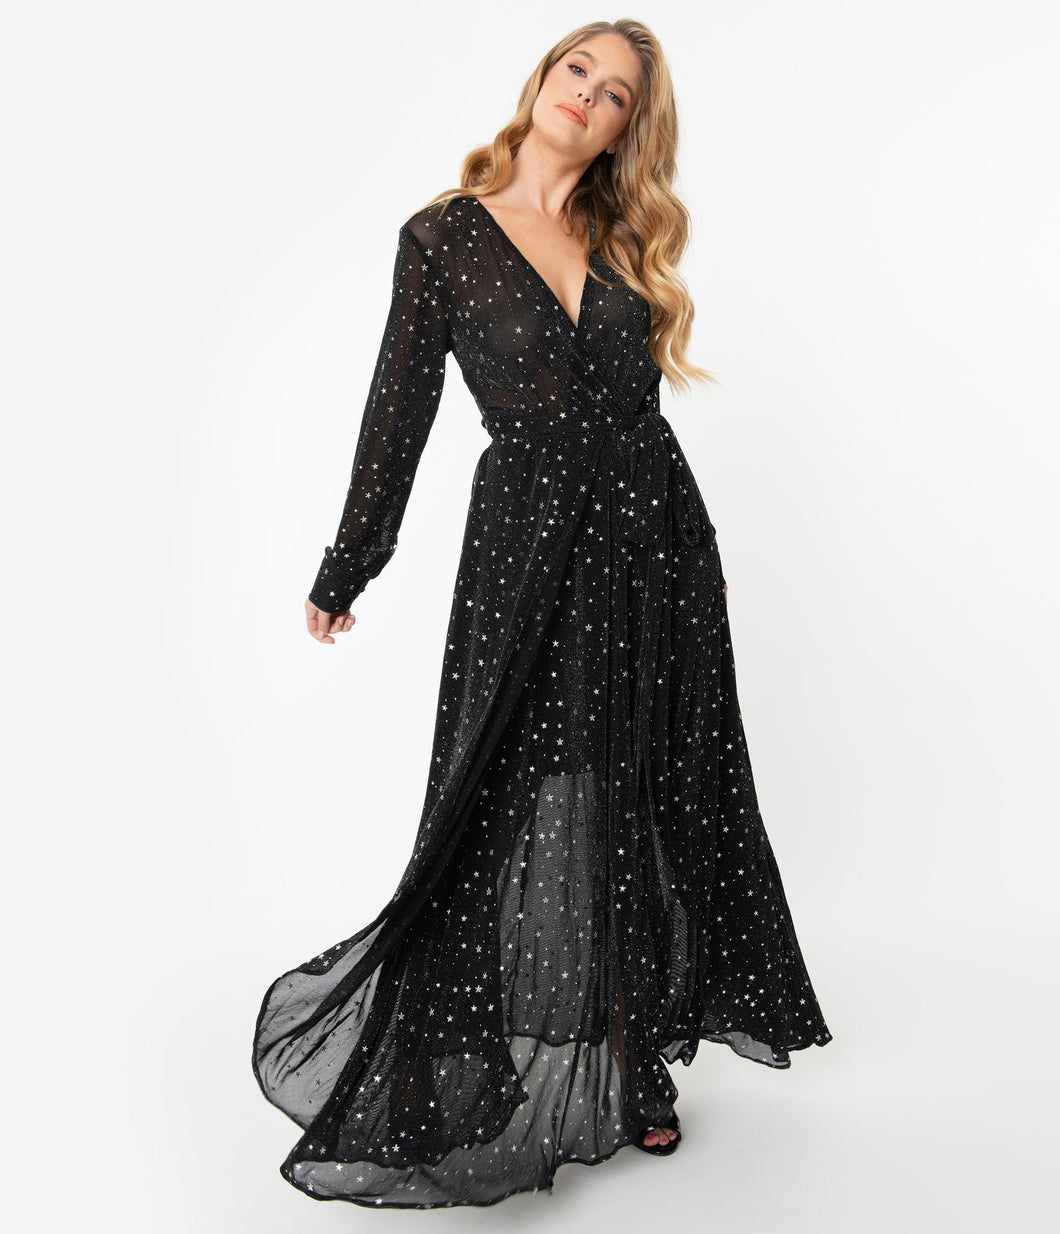 UNIQUE VINTAGE- METALLIC MAXI STARS DRESS